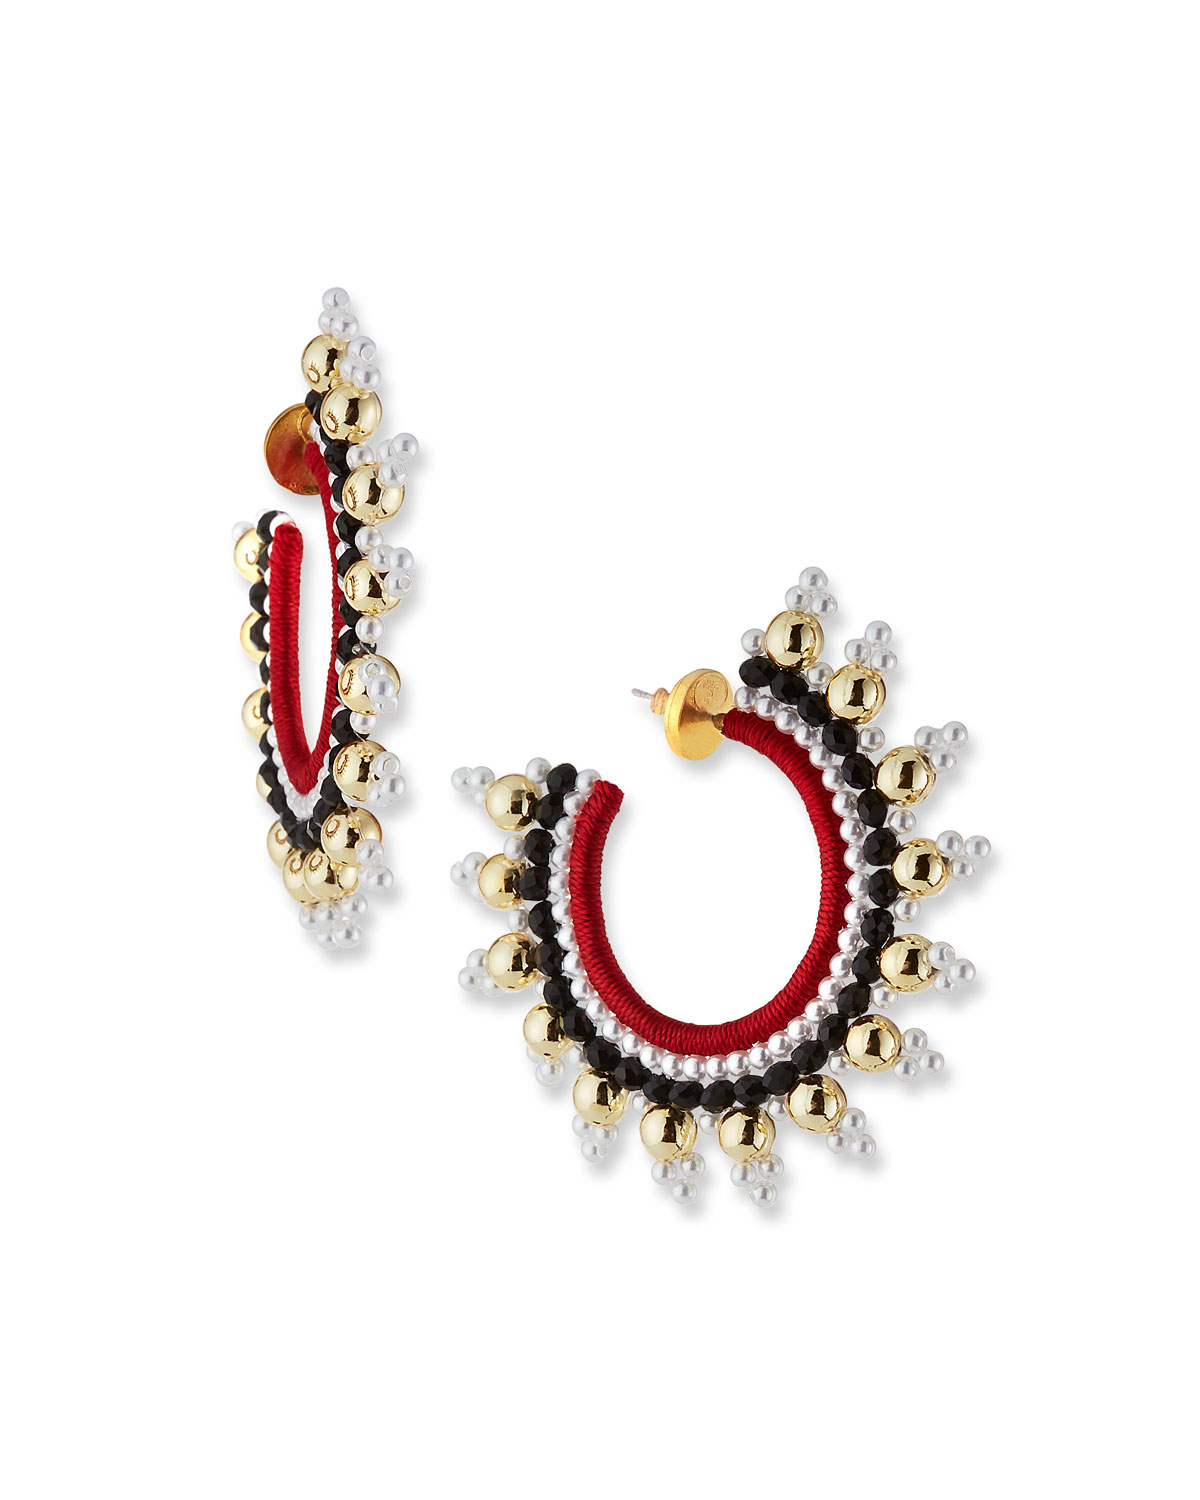 Oscar De La Renta Accessories SMALL EMBELLISHED HOOP EARRINGS